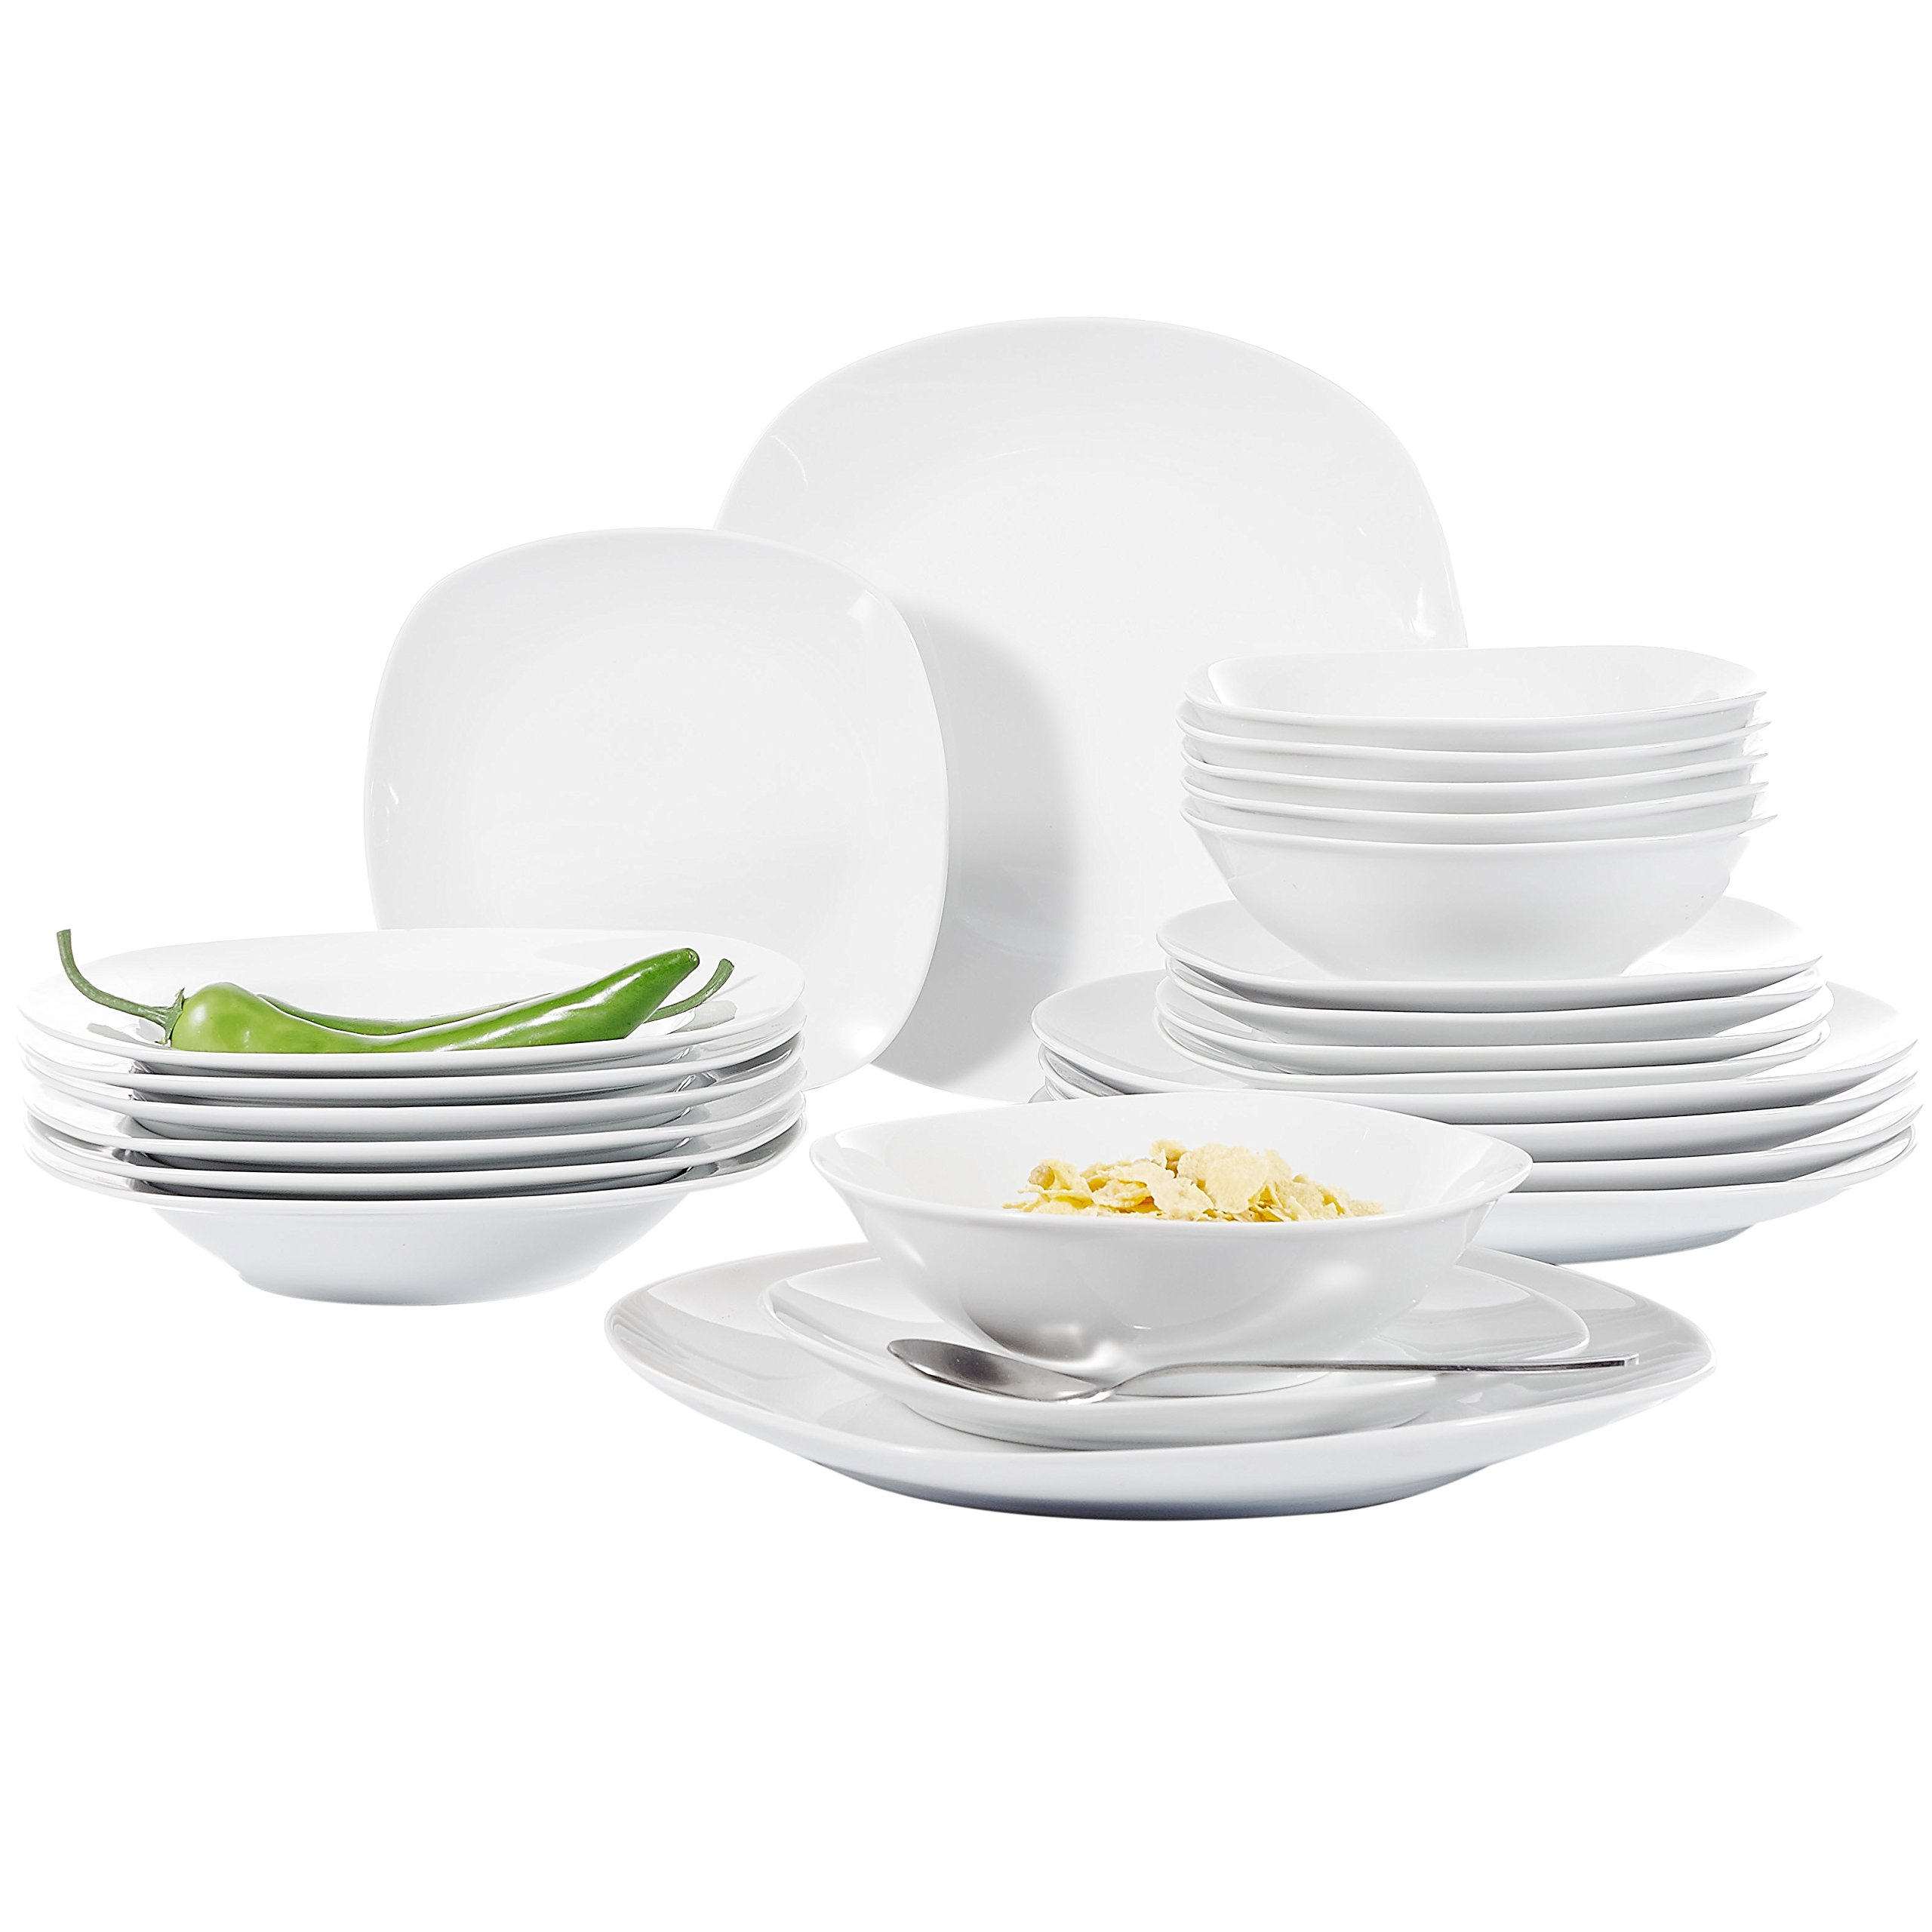 Malacasa, Series Elisa, 24-Piece Ivory White Porcelain Dinnerware Sets of 9.75'' Dinner Plate, 8.5'' Soup Plate, 7.5'' Dessert Plates and 6.7'' Bowl Set Service for 6